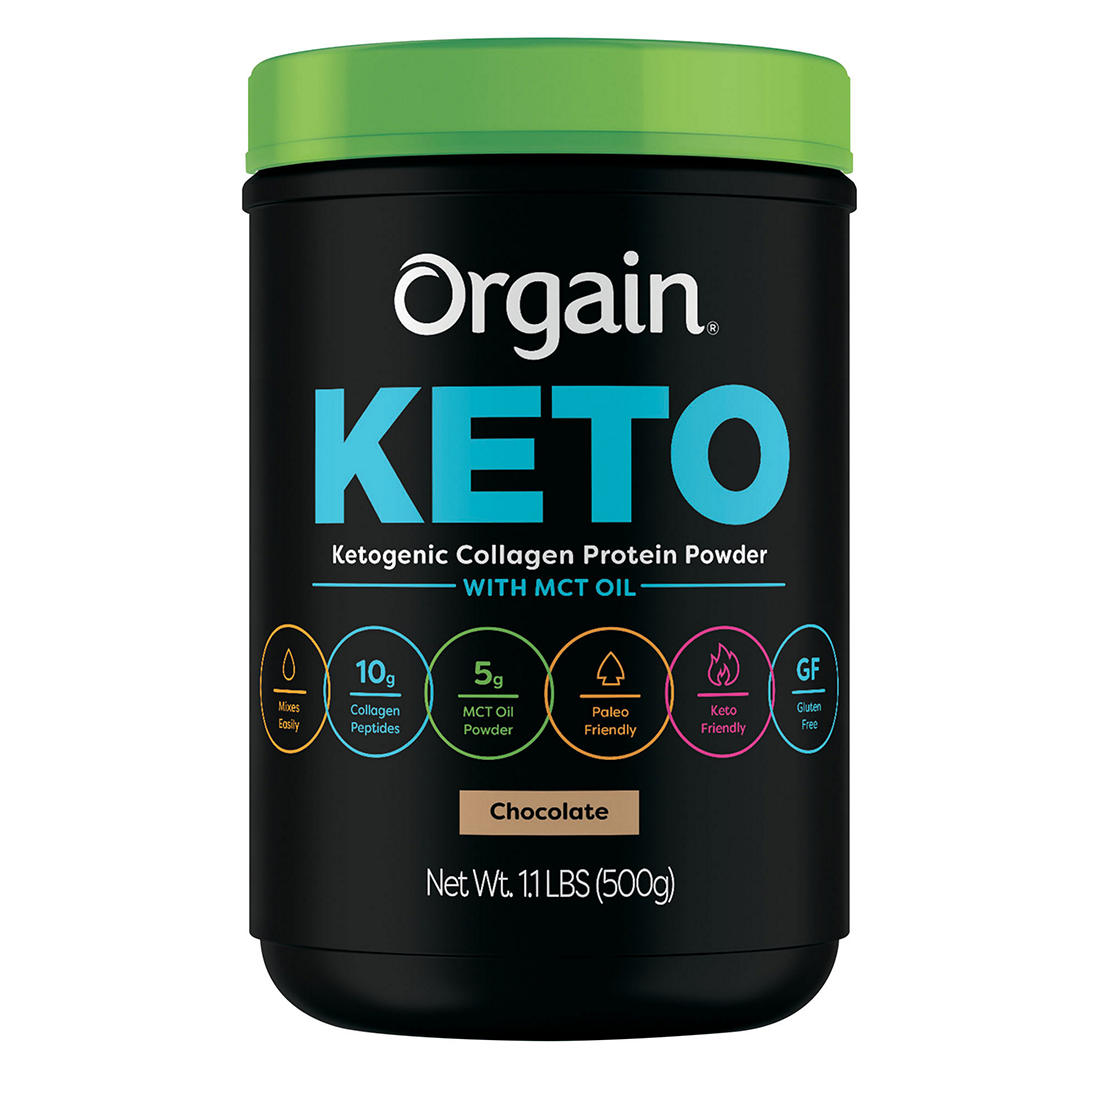 keto diet approved protein powder